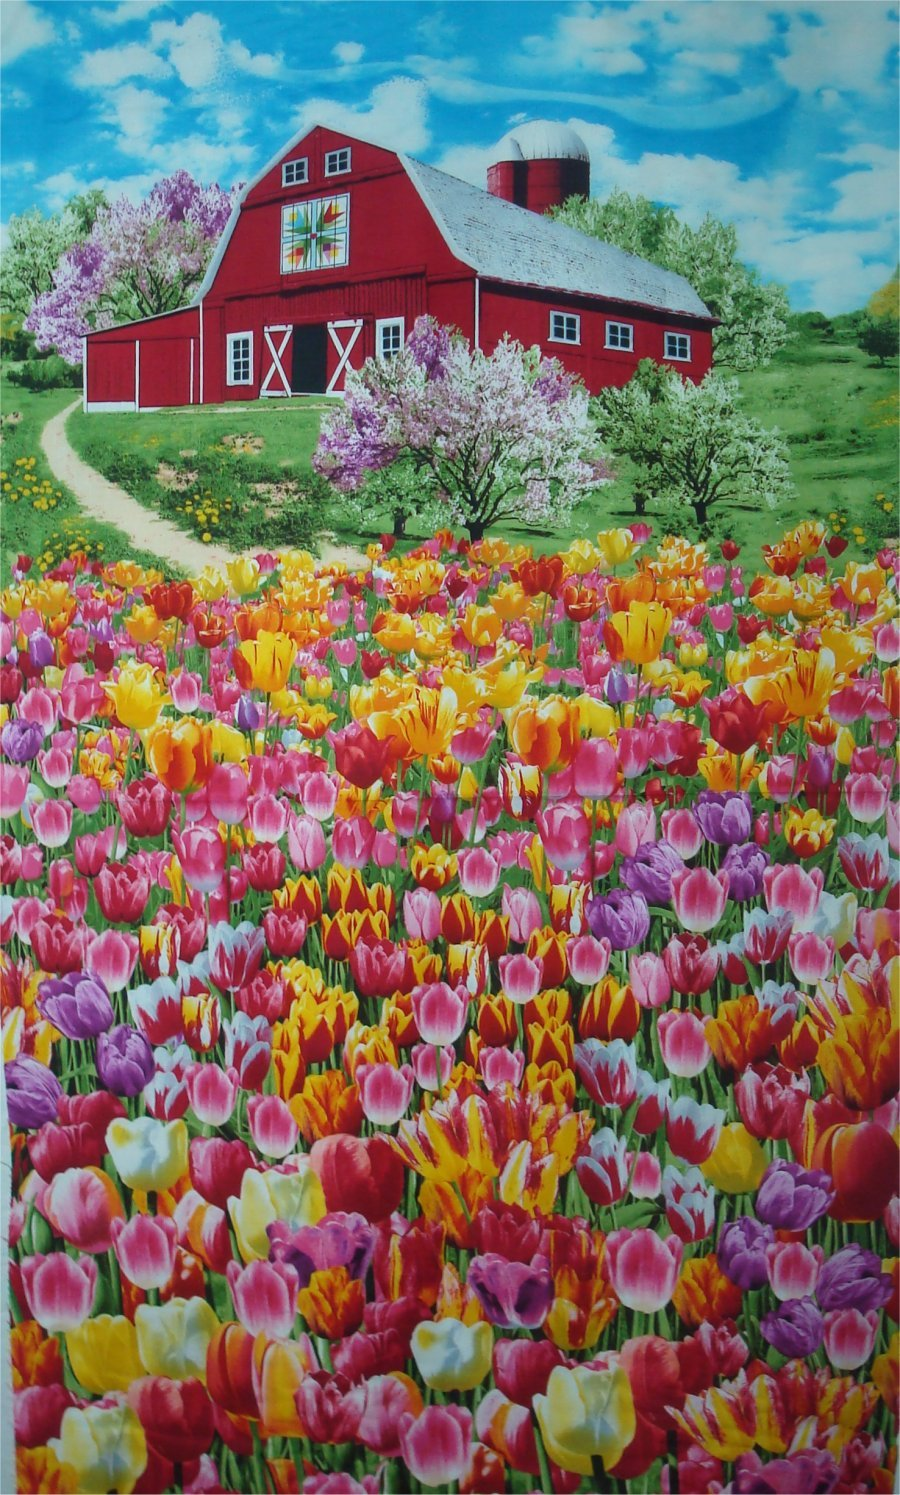 BARN WITH TULIPS